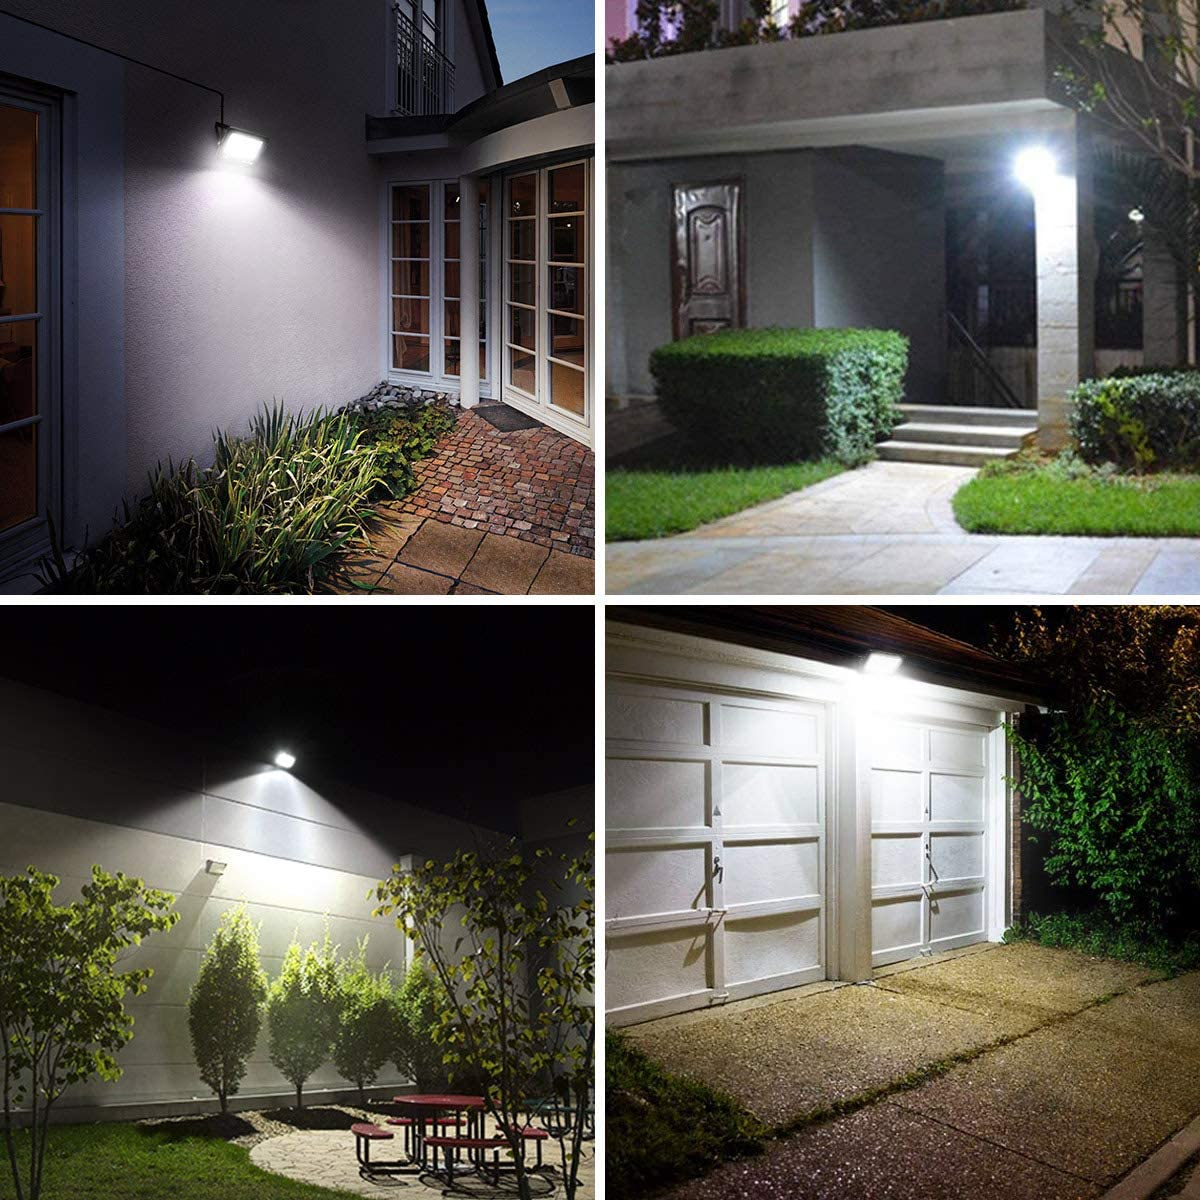 Rooftop and More 200W Incandescent Lamp Equivalent LE 30W Led Floodlight Outdoor 3000 Lumen LED Security Lights Backyard Daylight White Outdoor Lights for Patio Waterproof IP65